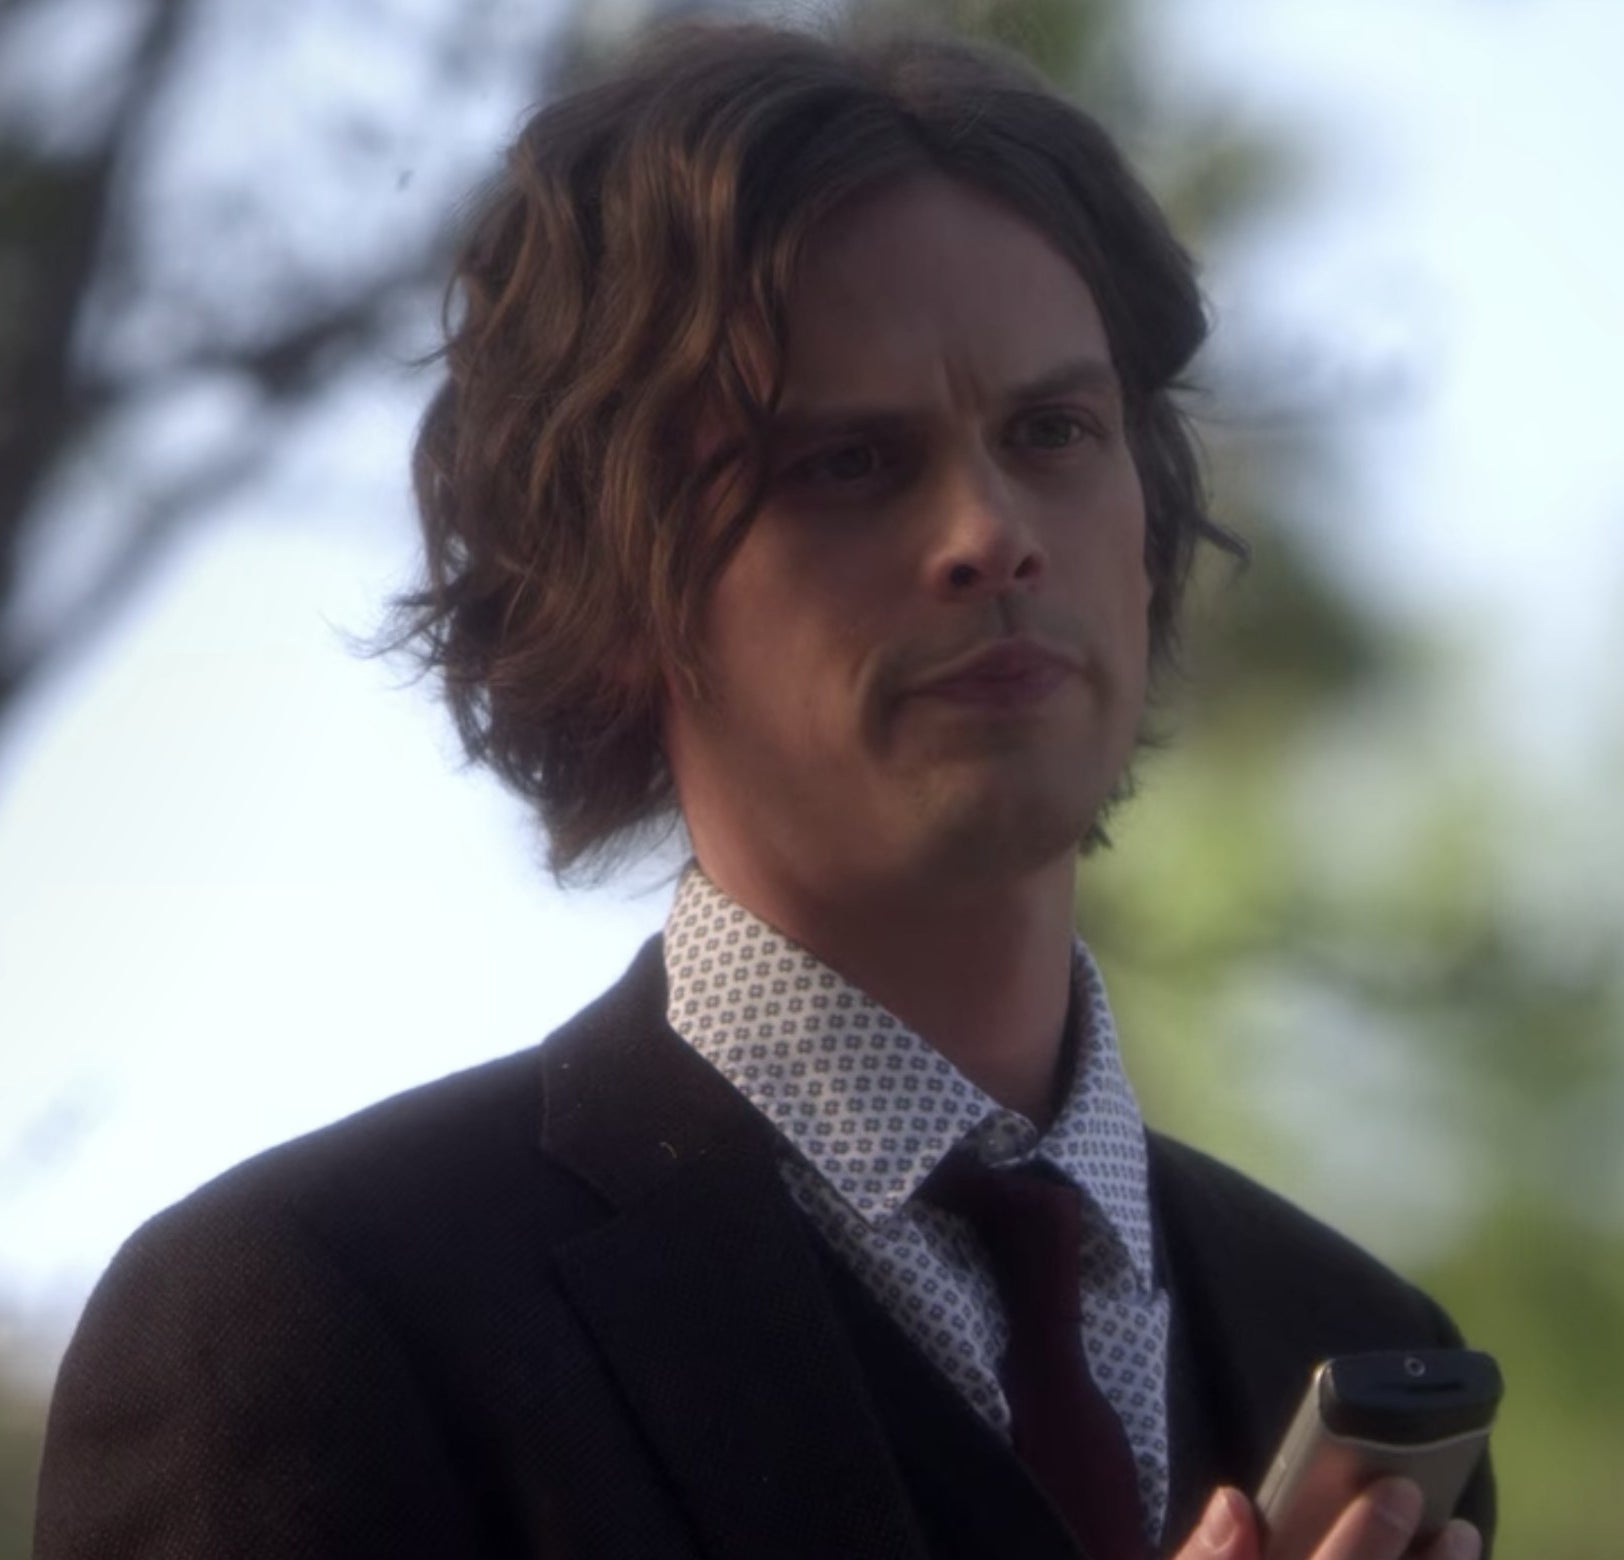 Spencer Reid from Criminal Minds talking and holding a phone